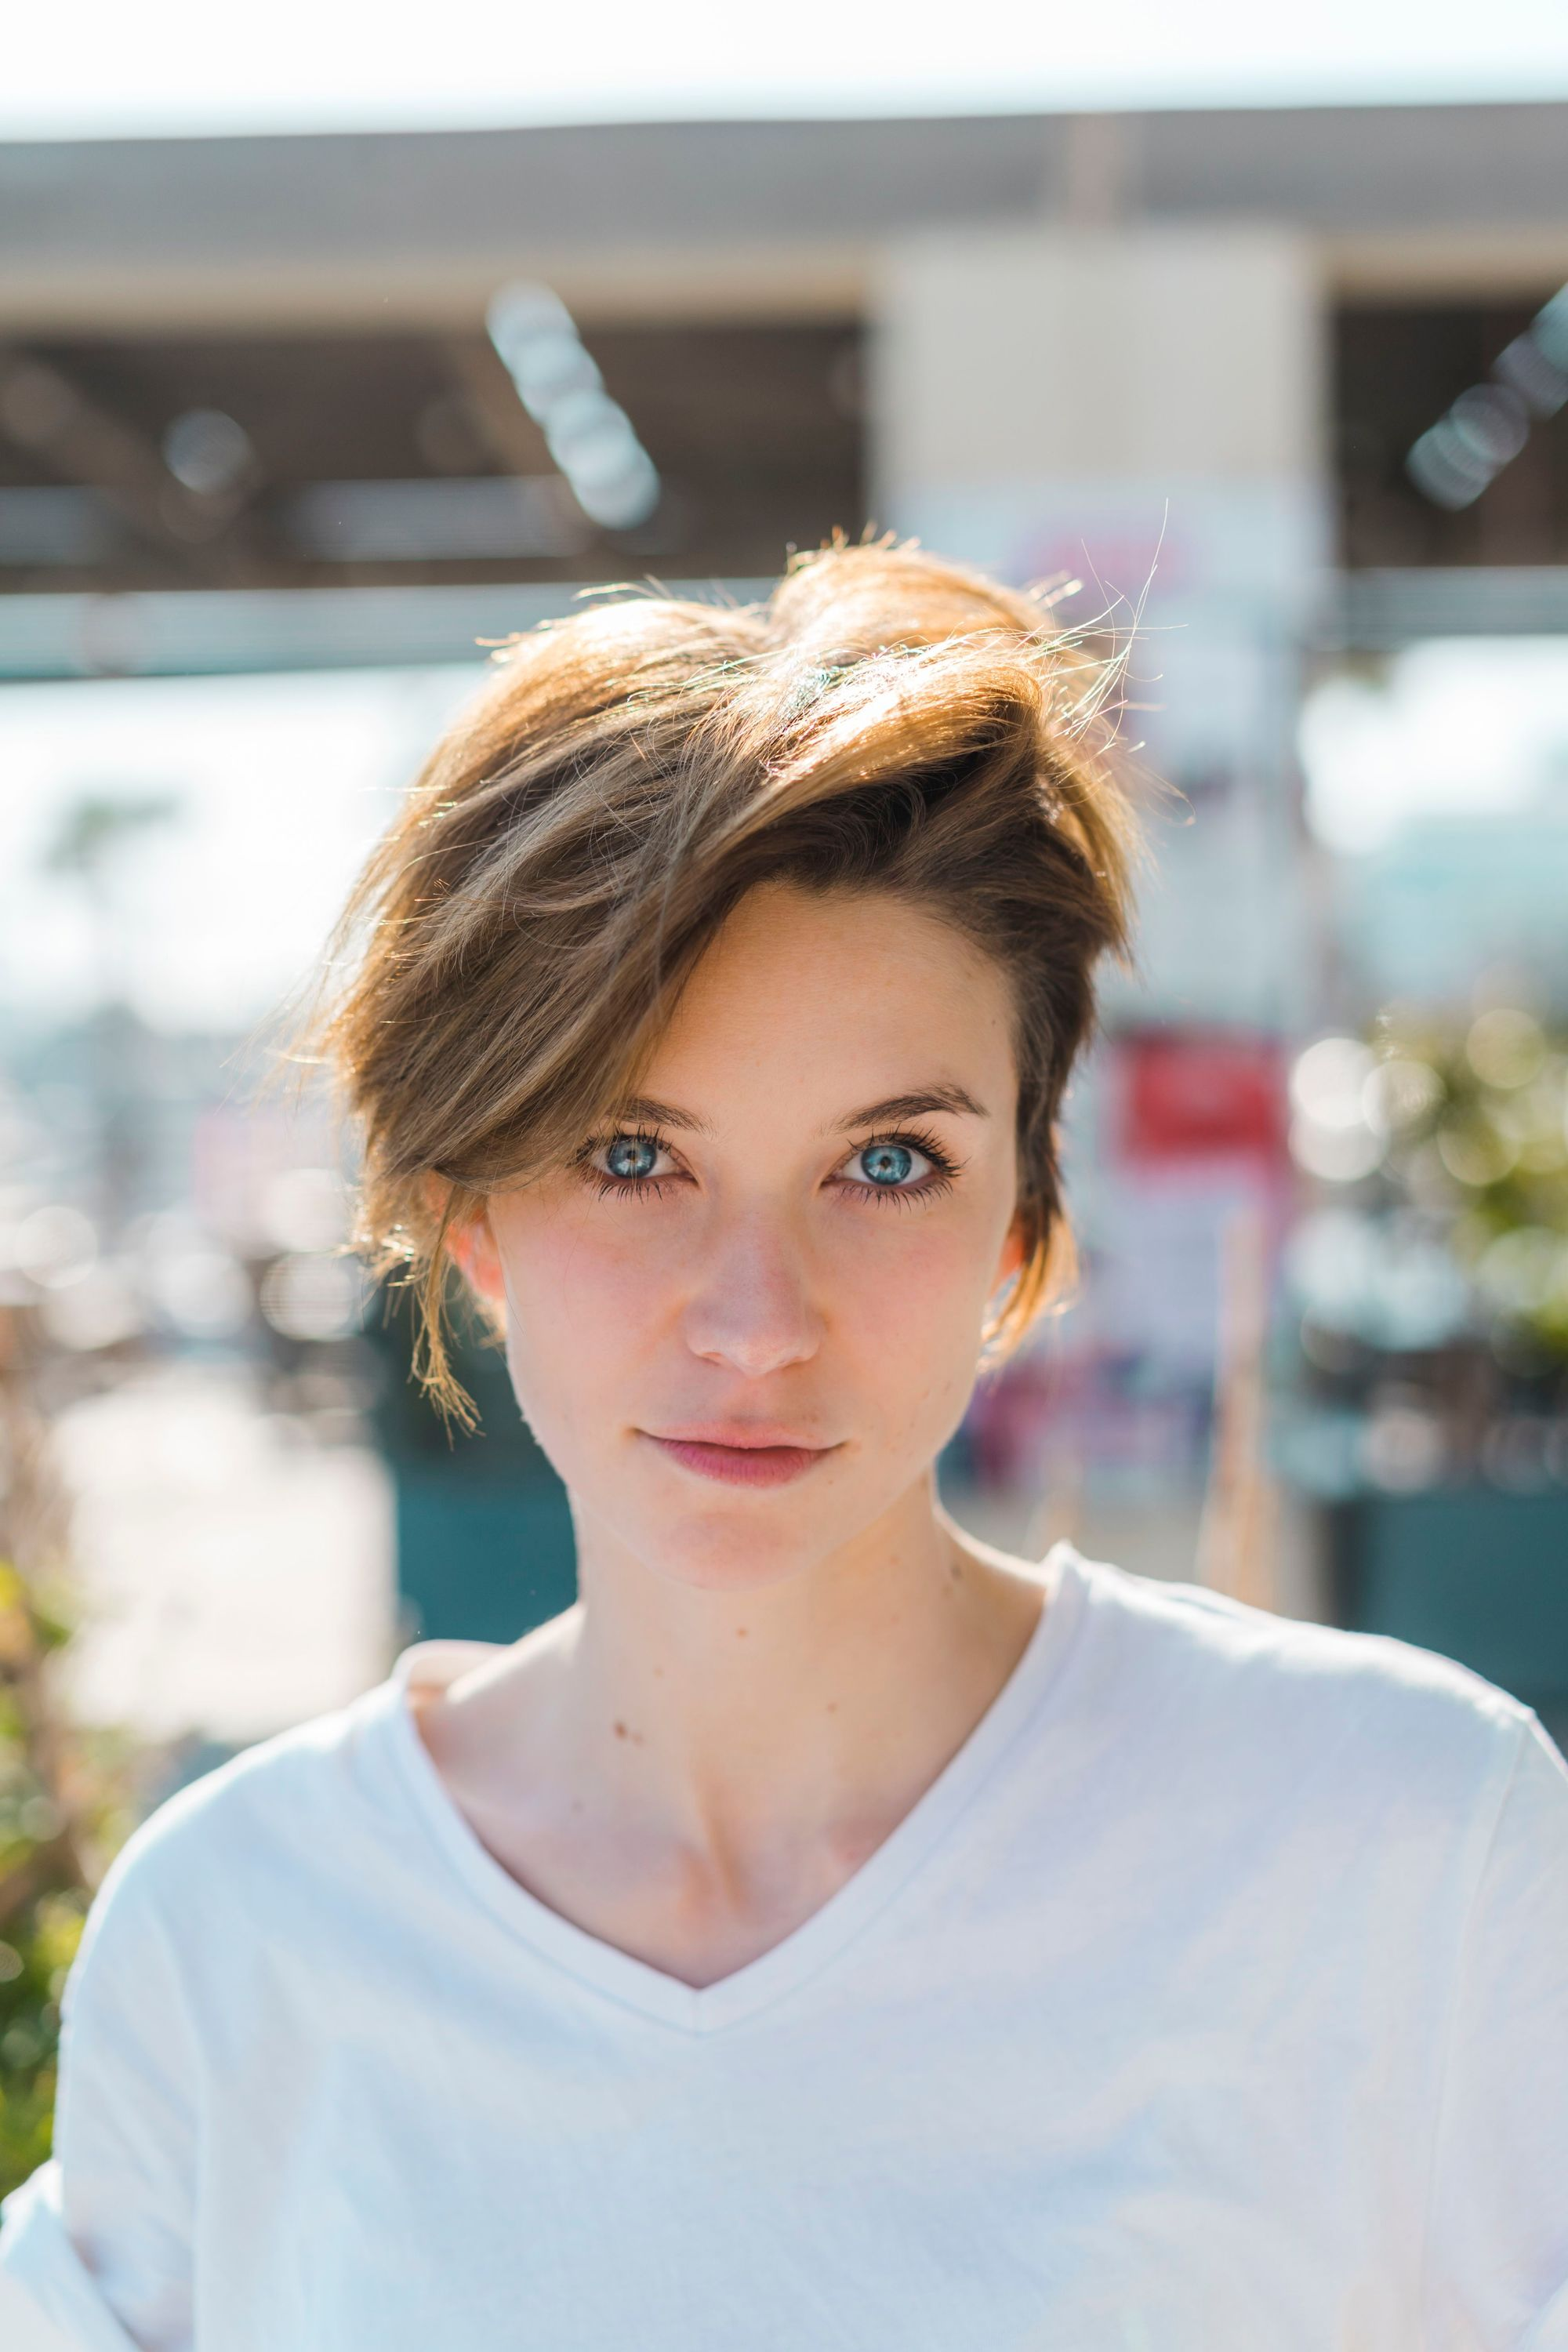 Haircuts for thick hair: Close up photo of a brunette woman with short pixie cut hair with sweeping layers